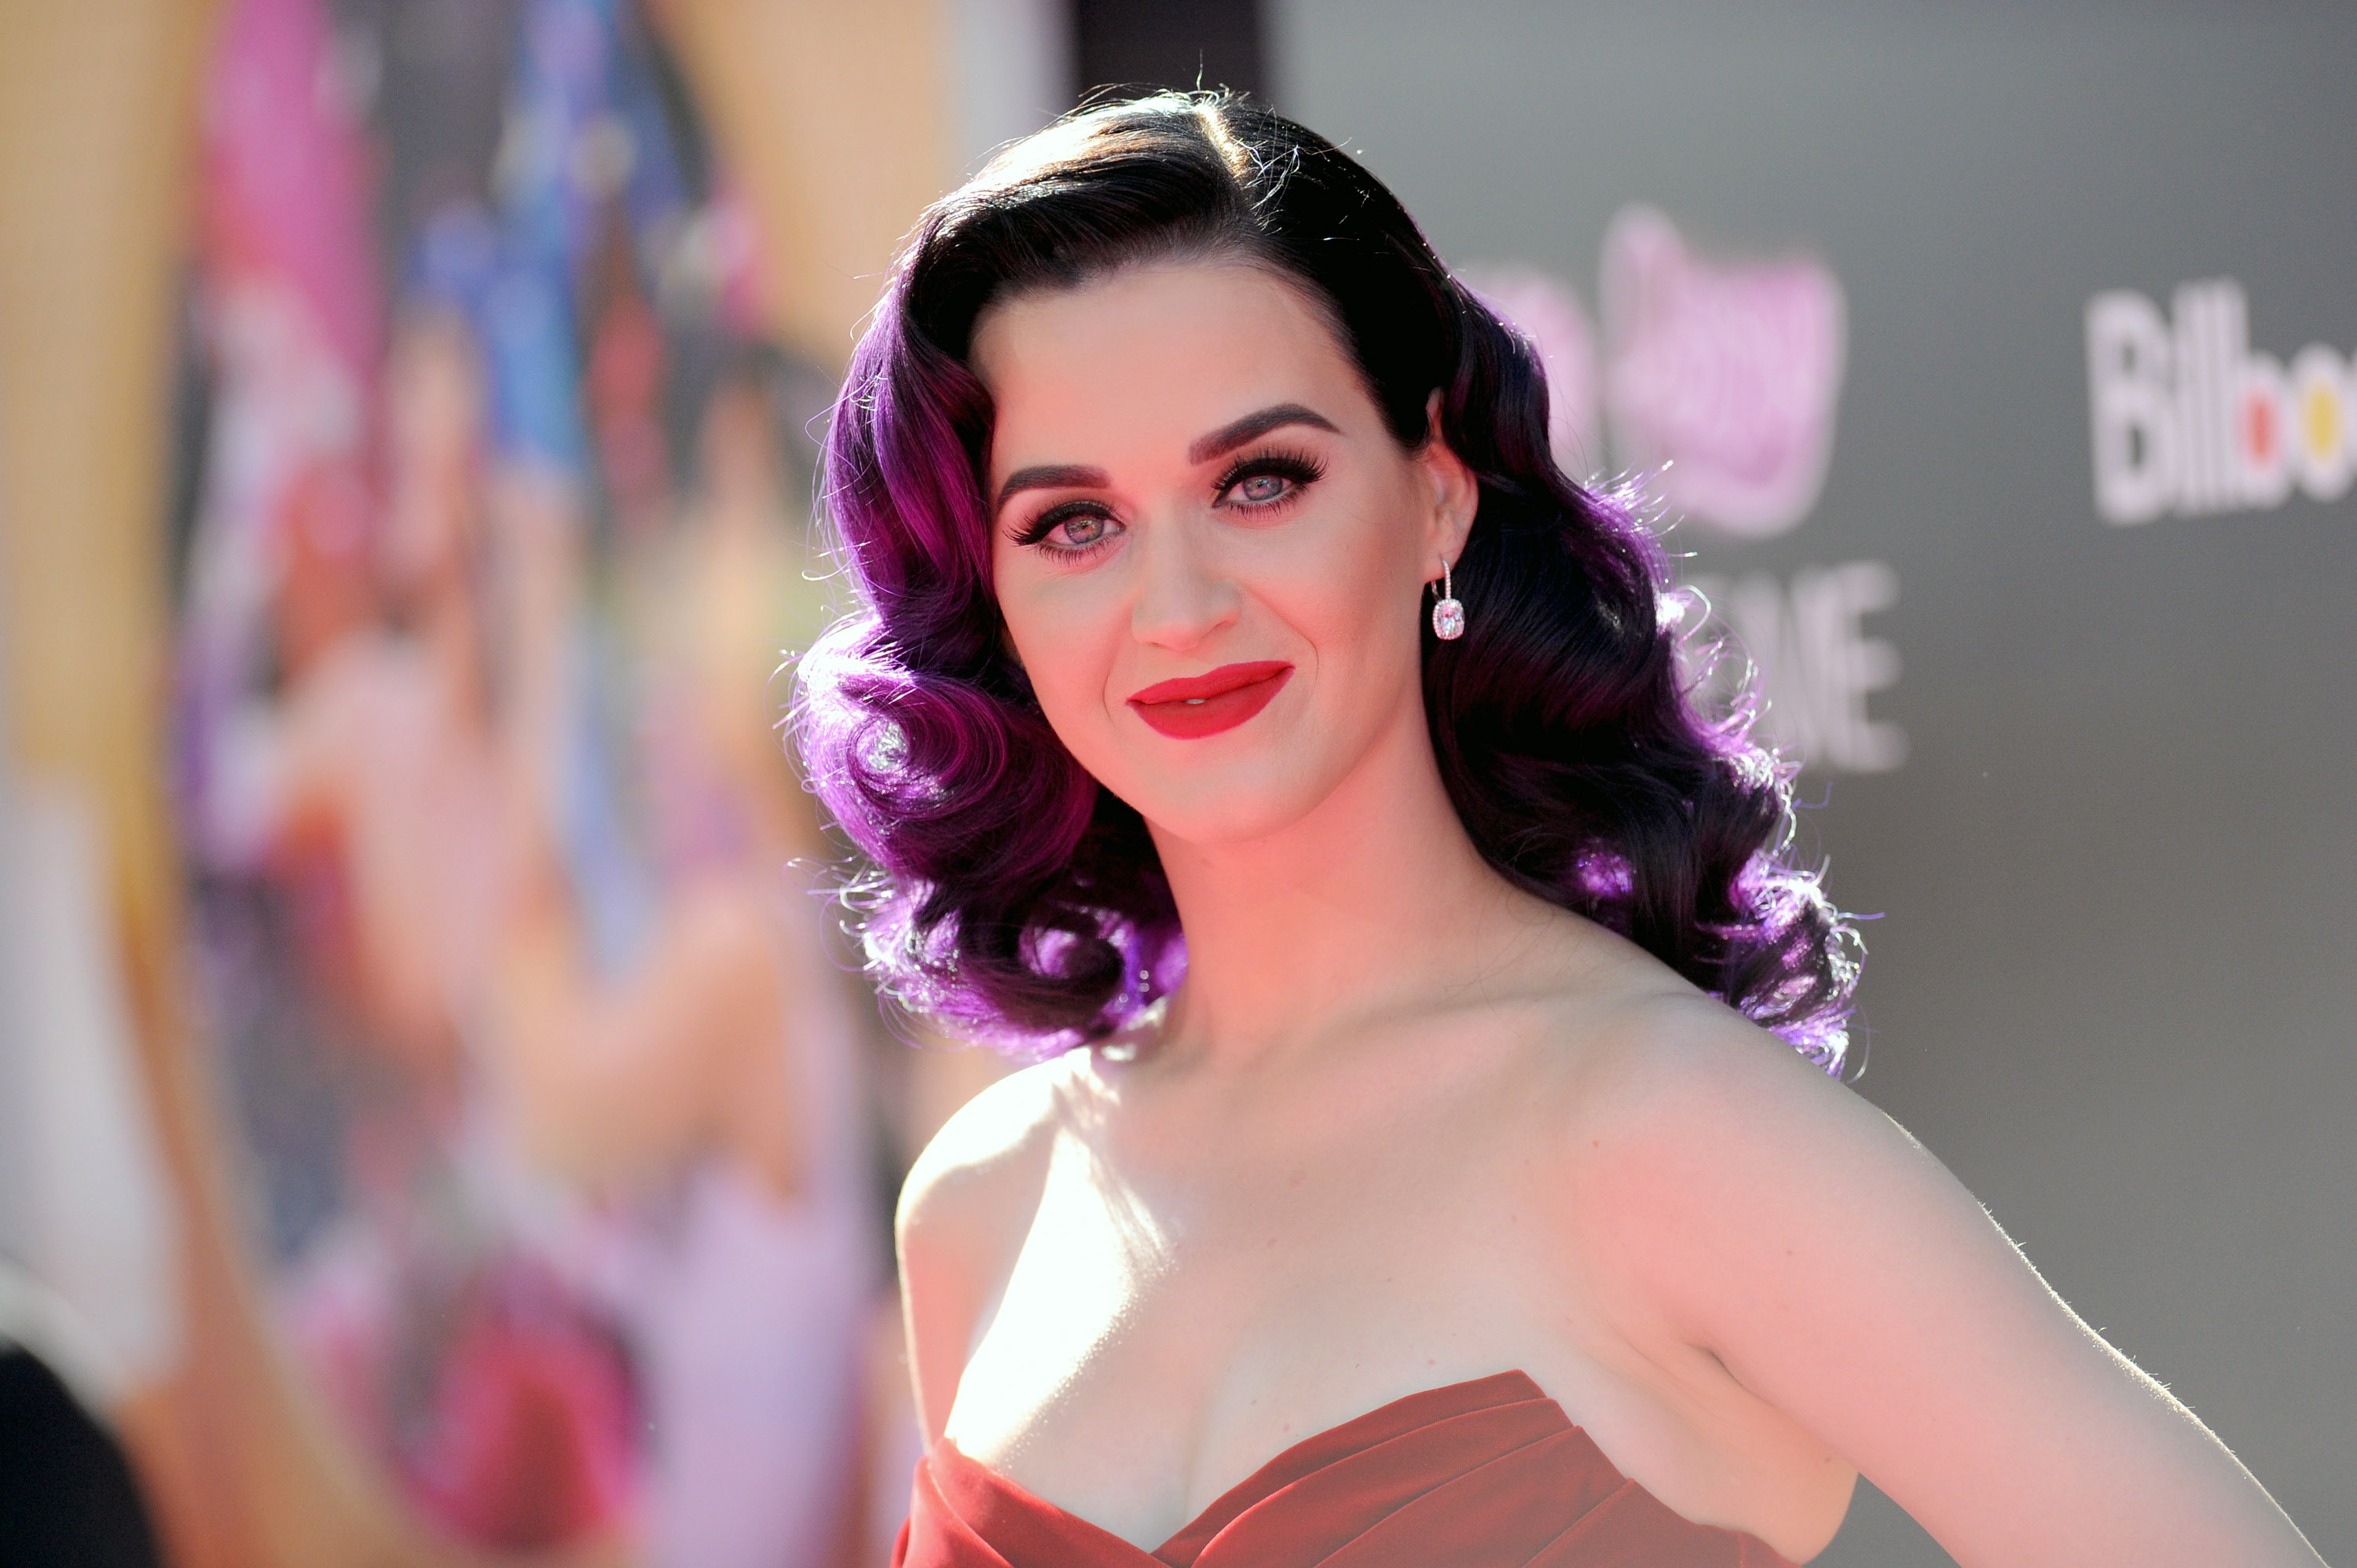 Katy Perry is performing at the Grammys and yes we are jumping up and down